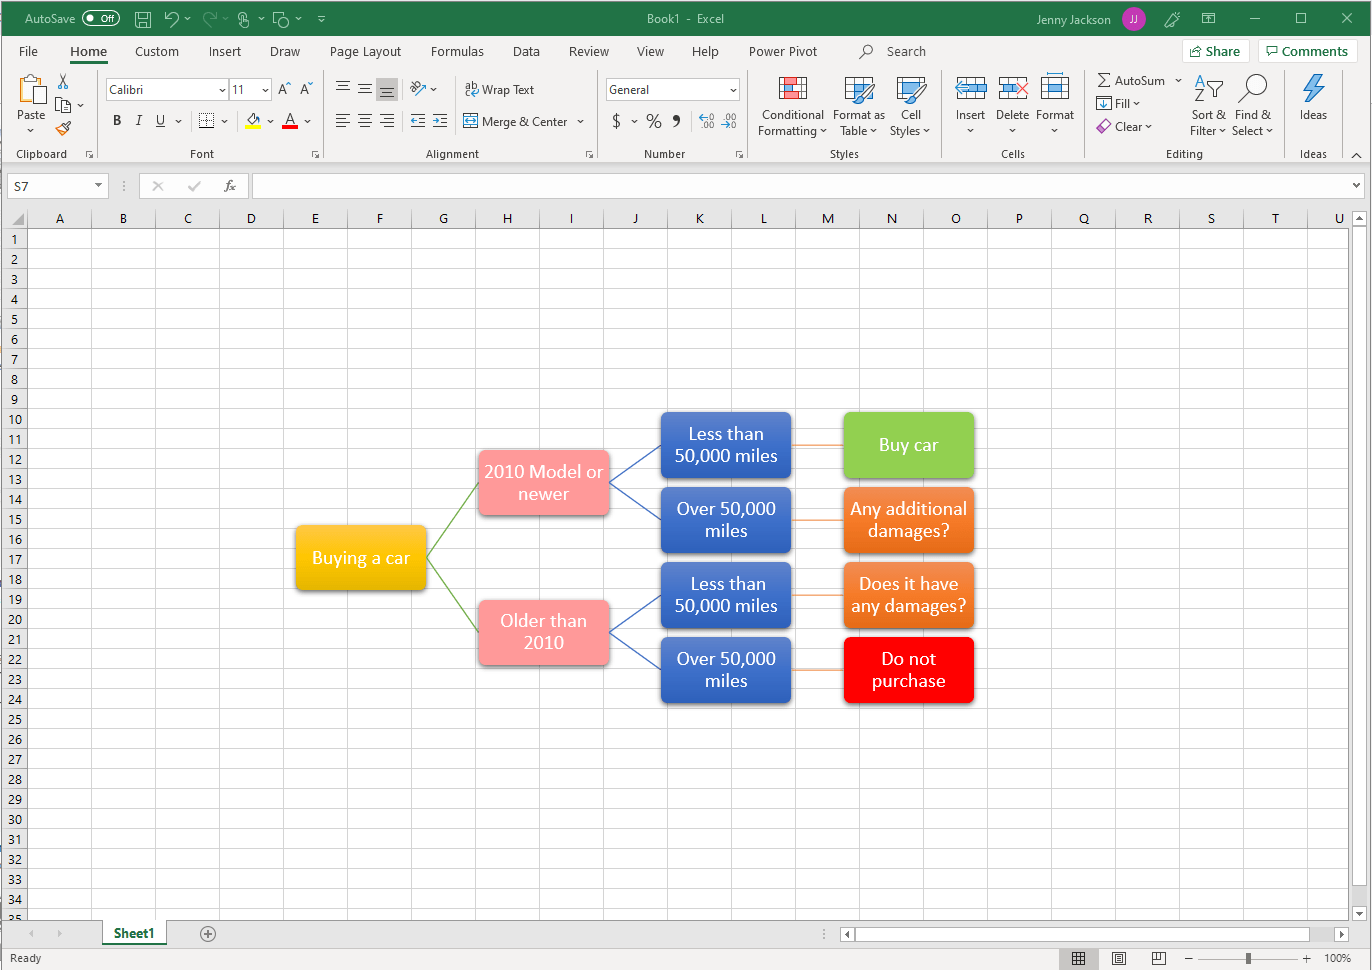 How To Make A Decision Tree In Excel